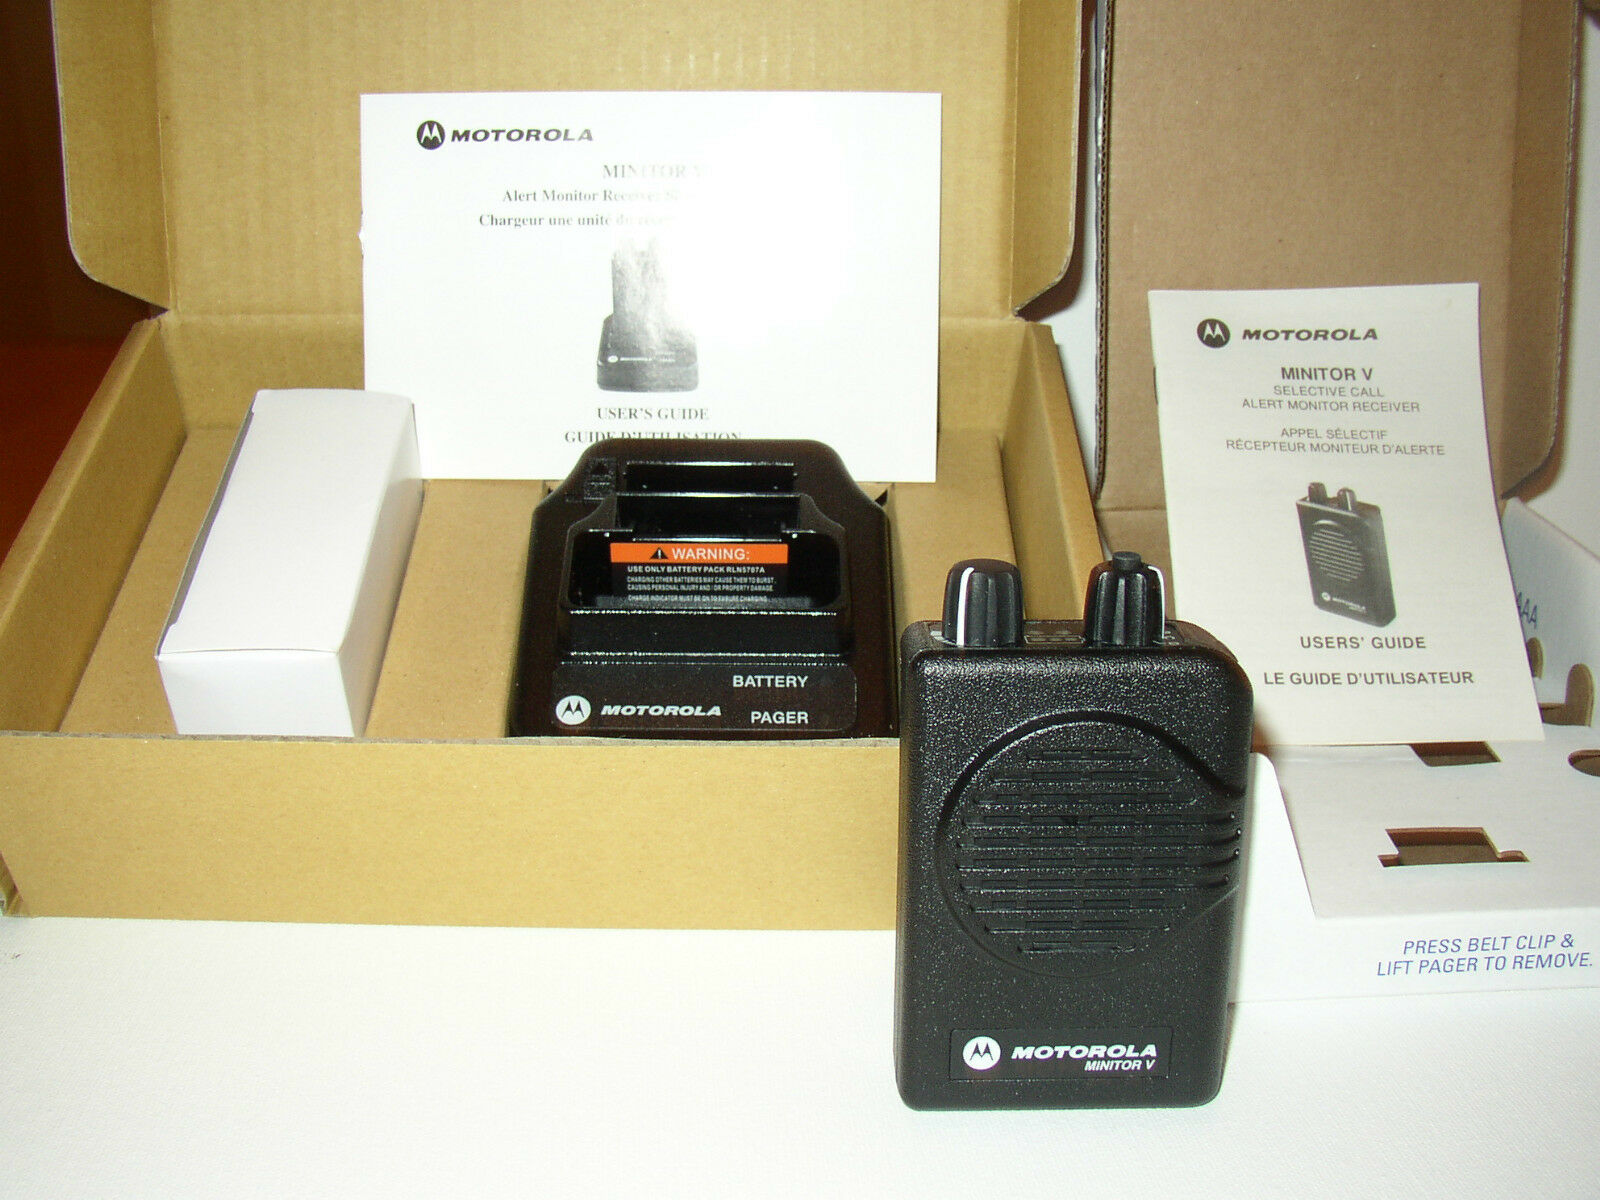 Motorola A03KMS9239BC Minitor V Pager for sale online